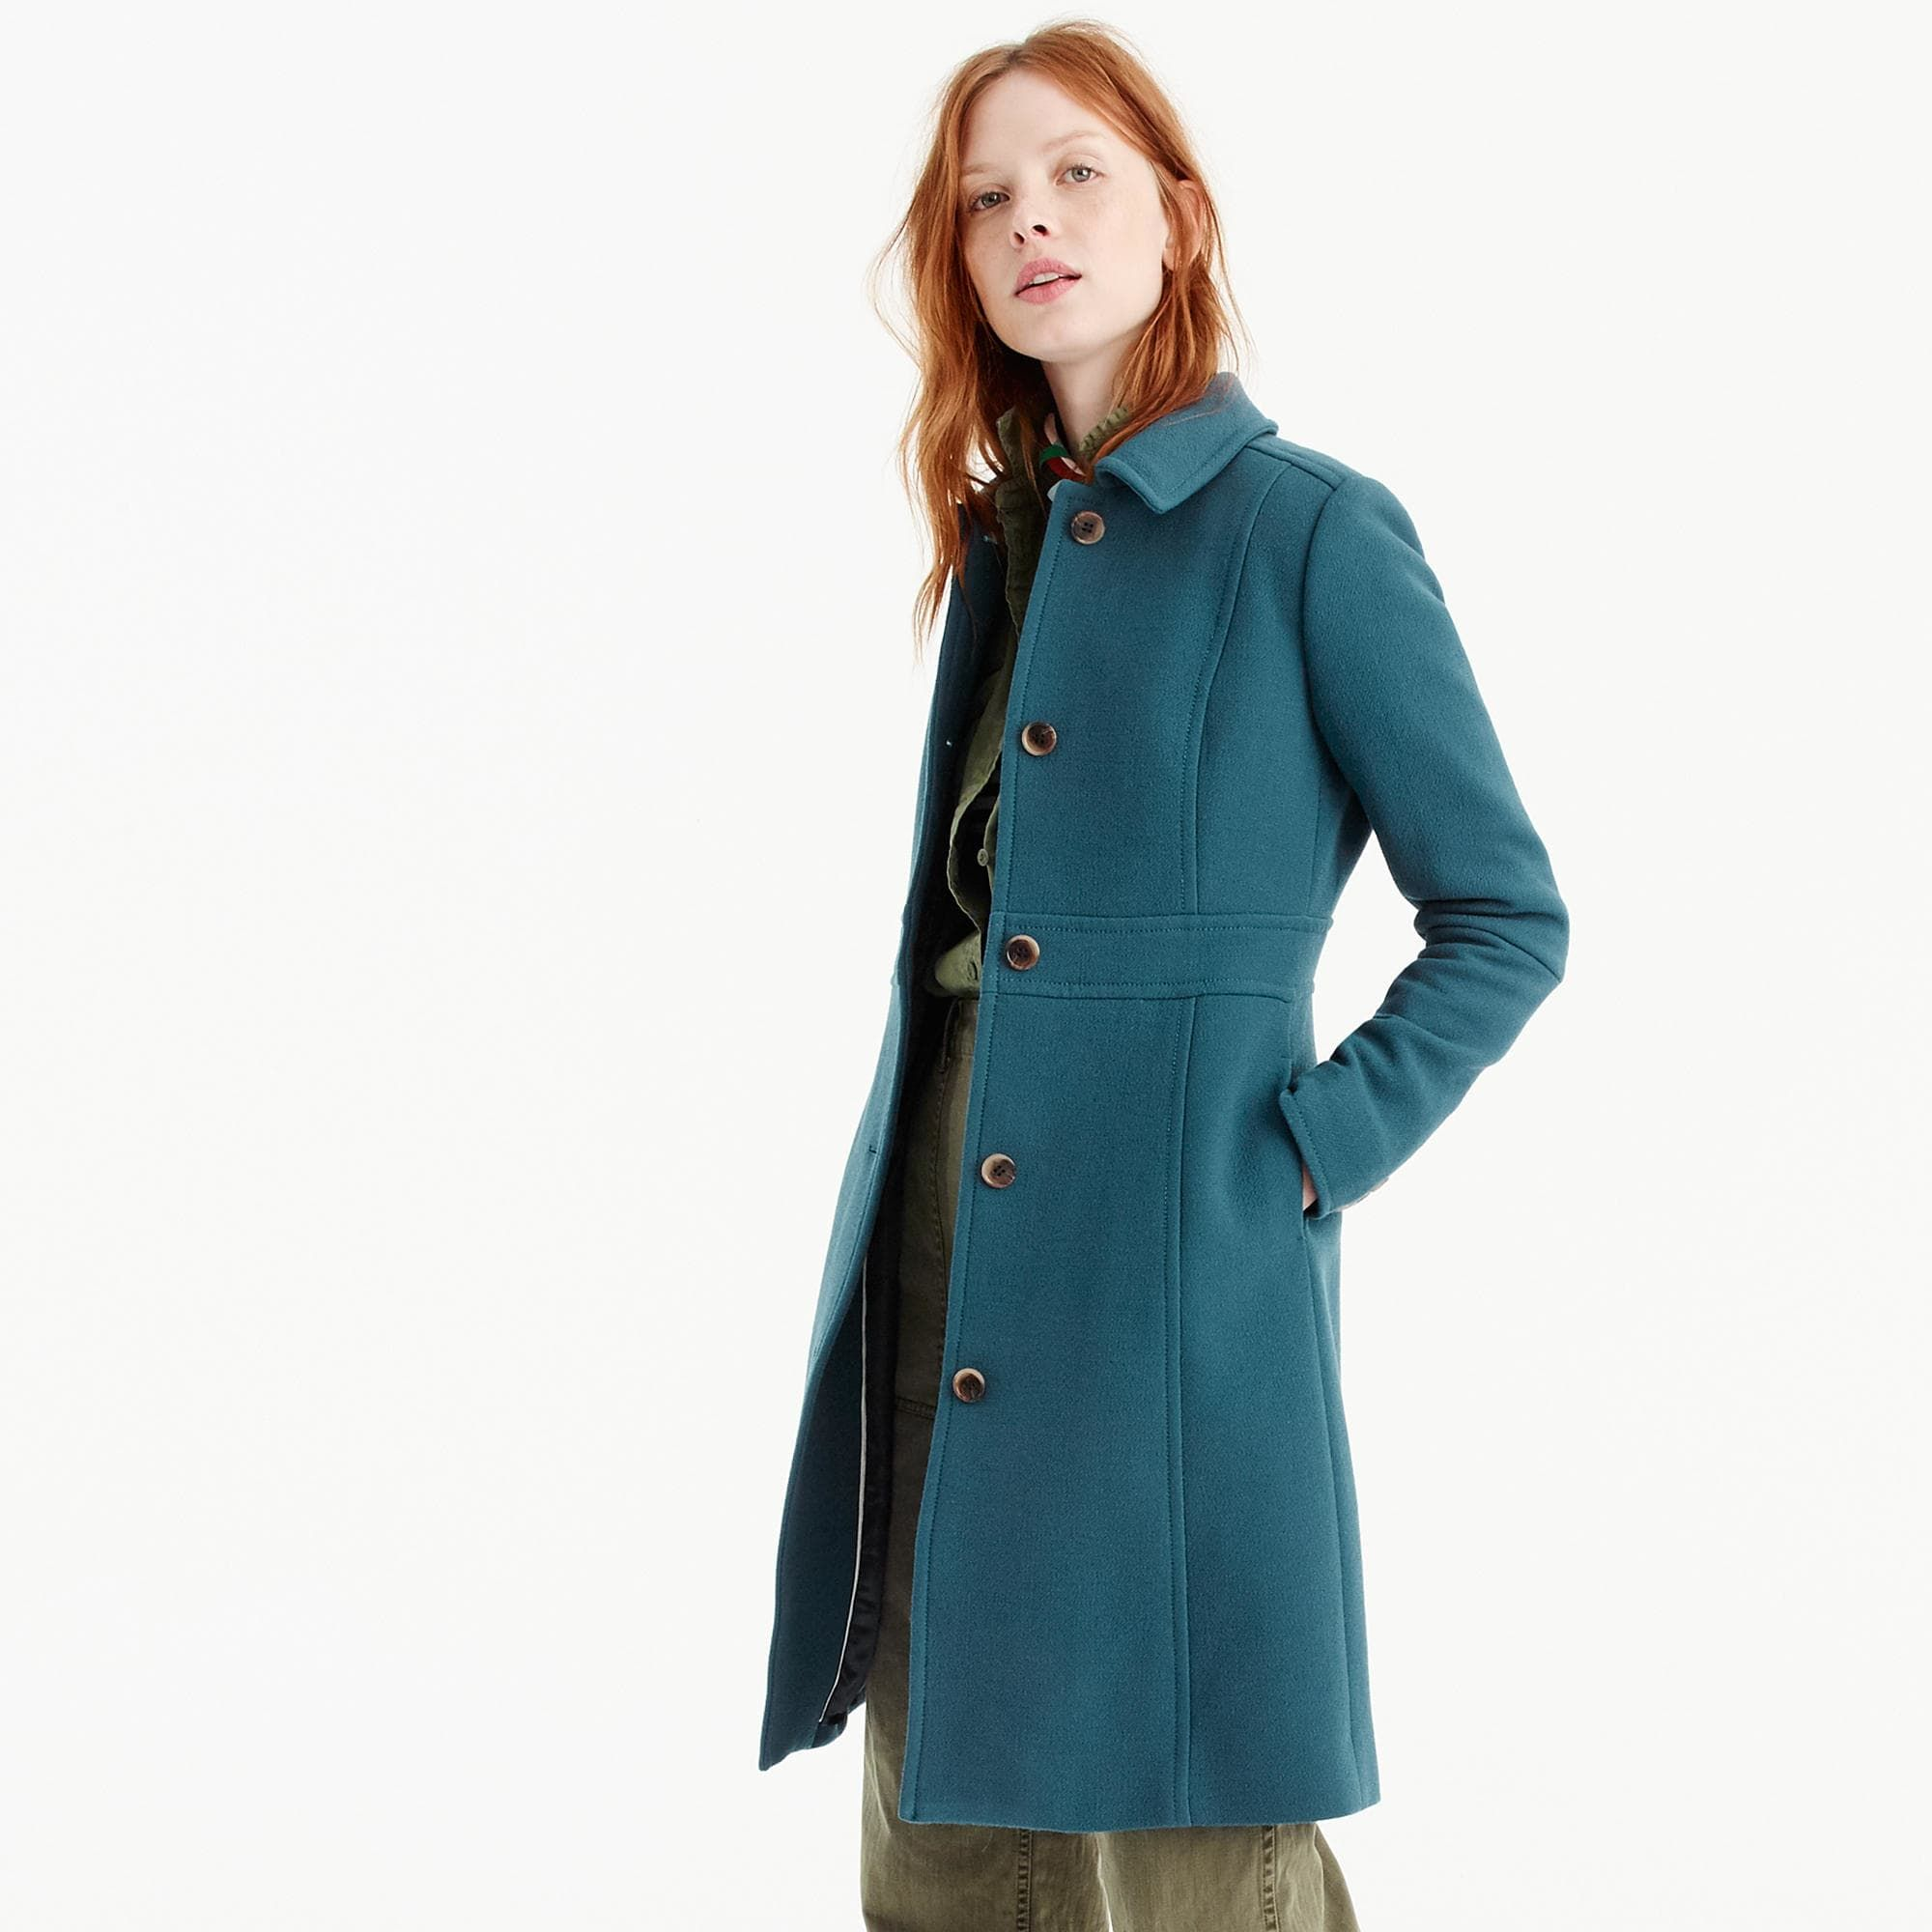 Classic Day Coat In Italian Double Cloth Wool With Thinsulate Coats For Women Outwear Women Clothes [ 2000 x 2000 Pixel ]